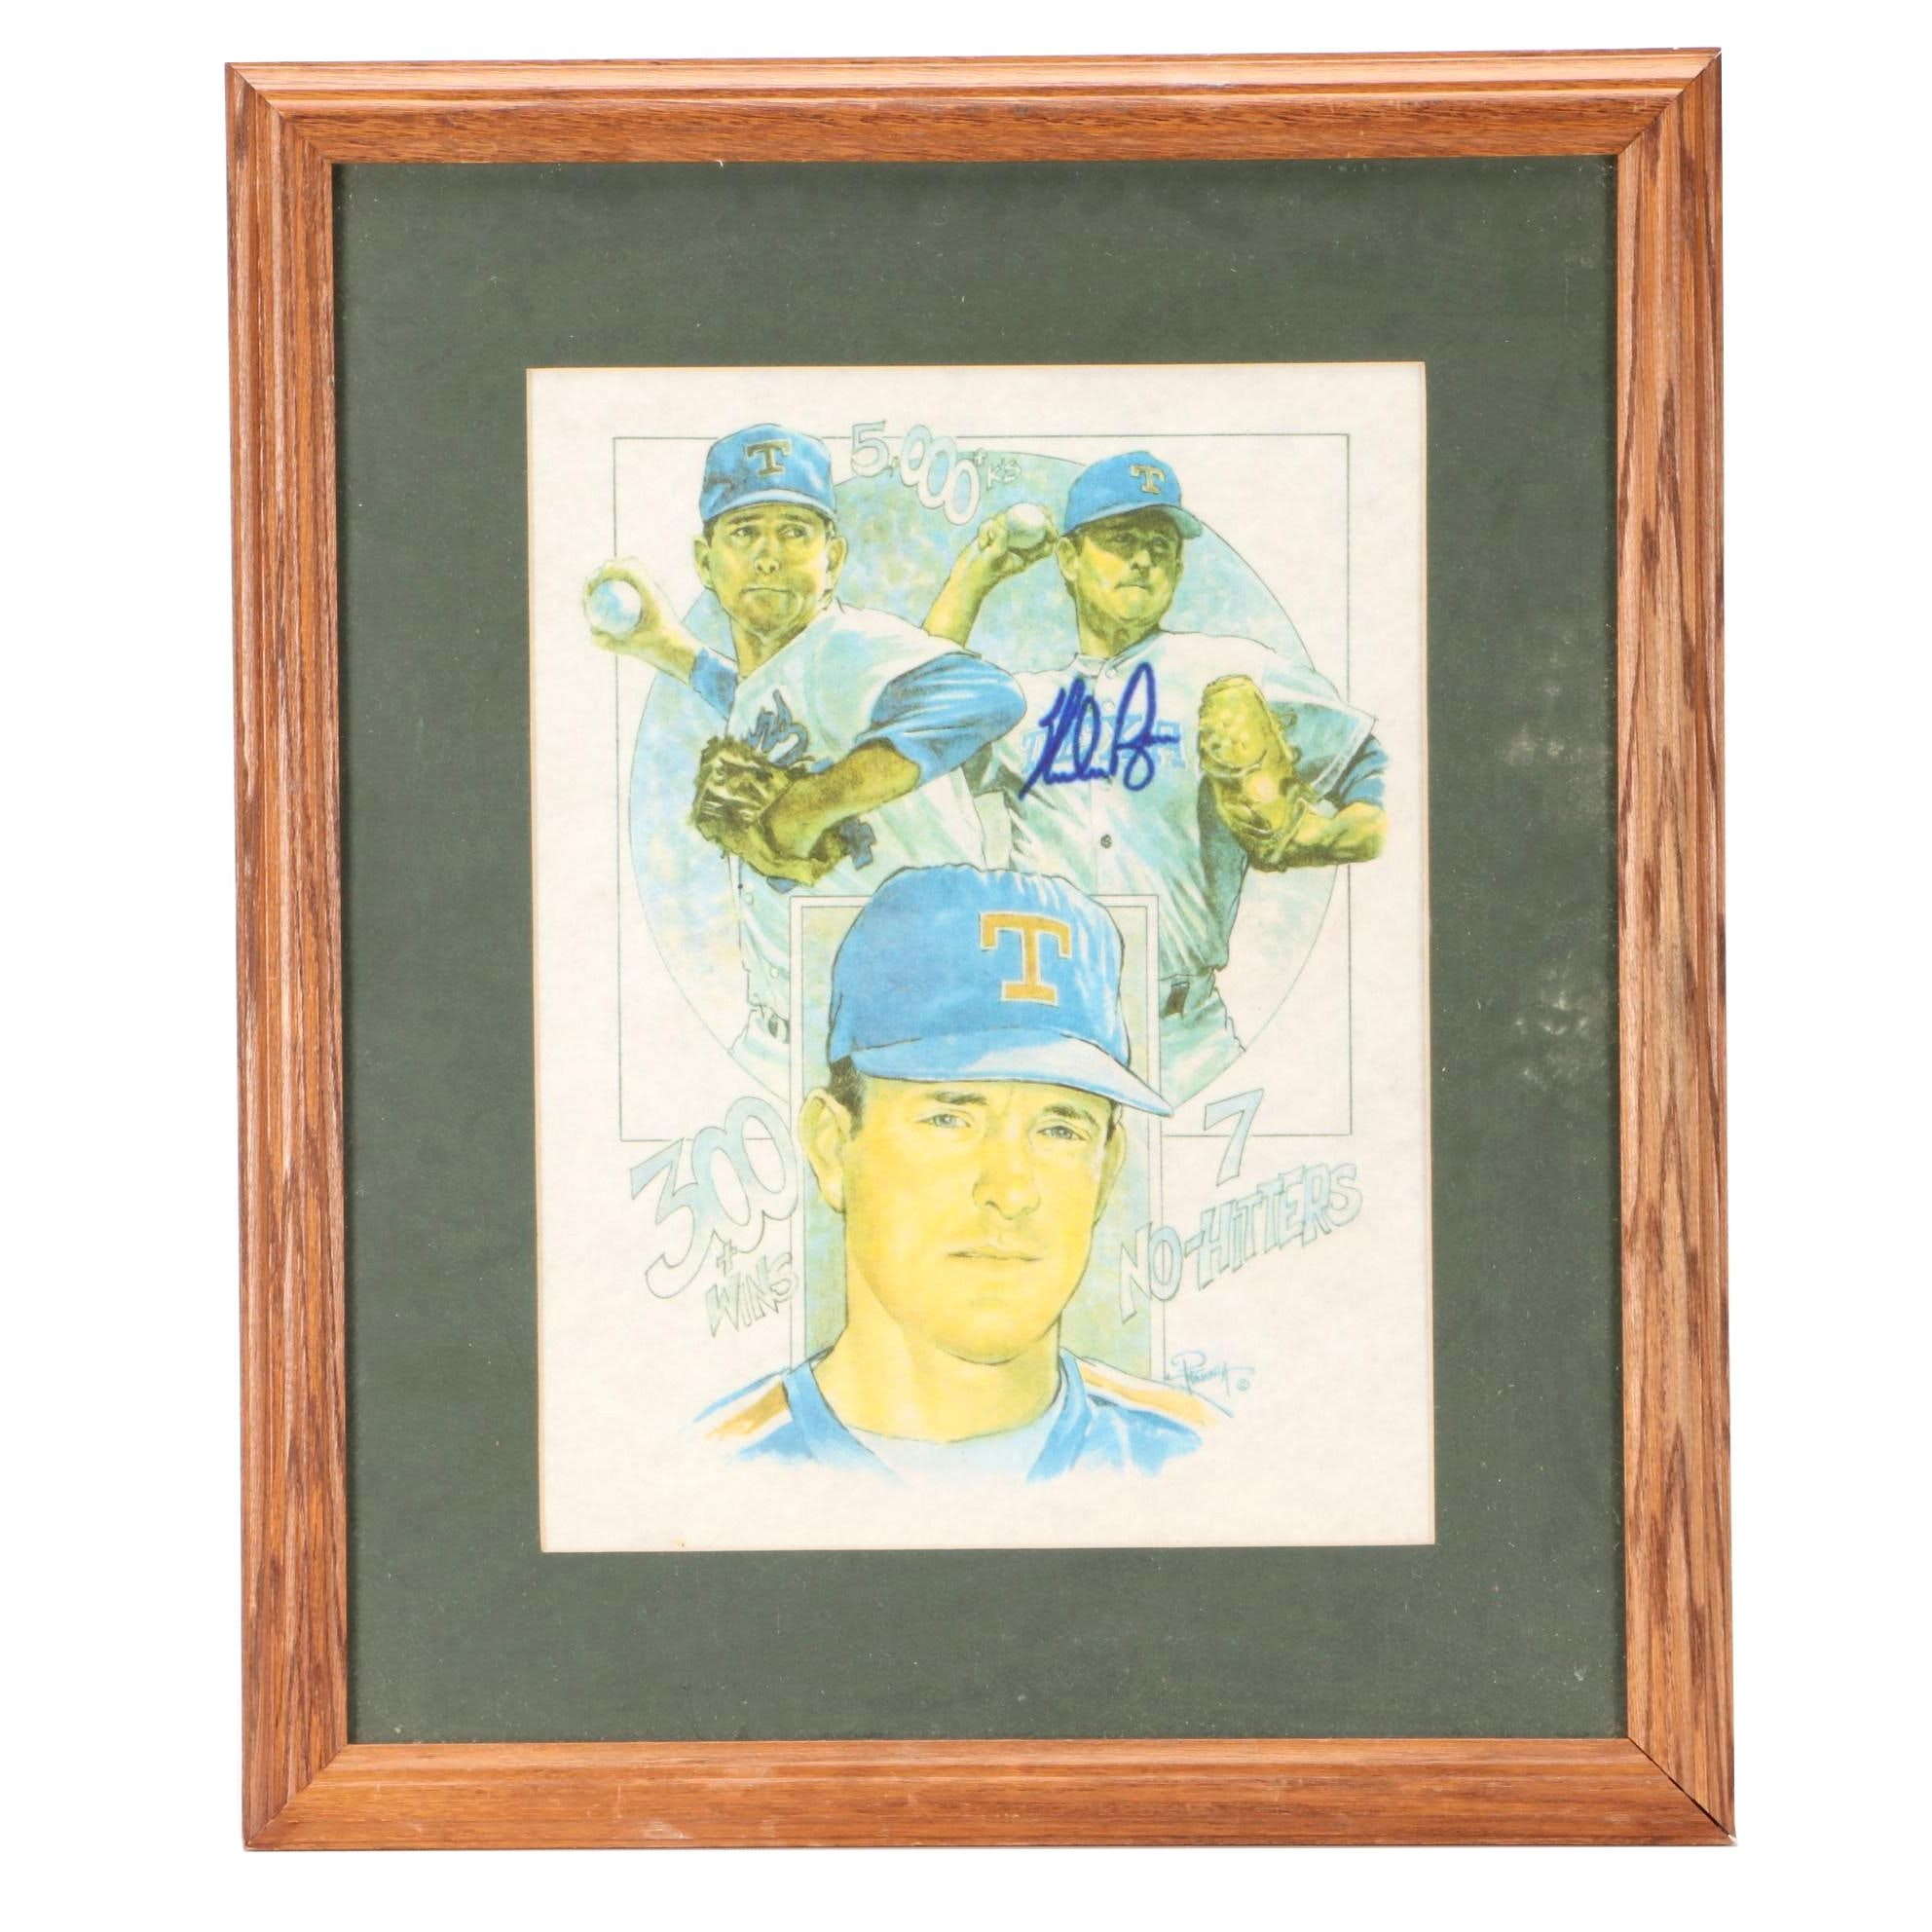 (HOF) Nolan Ryan Signed Texas Rangers Matted and Framed Baseball Lithograph